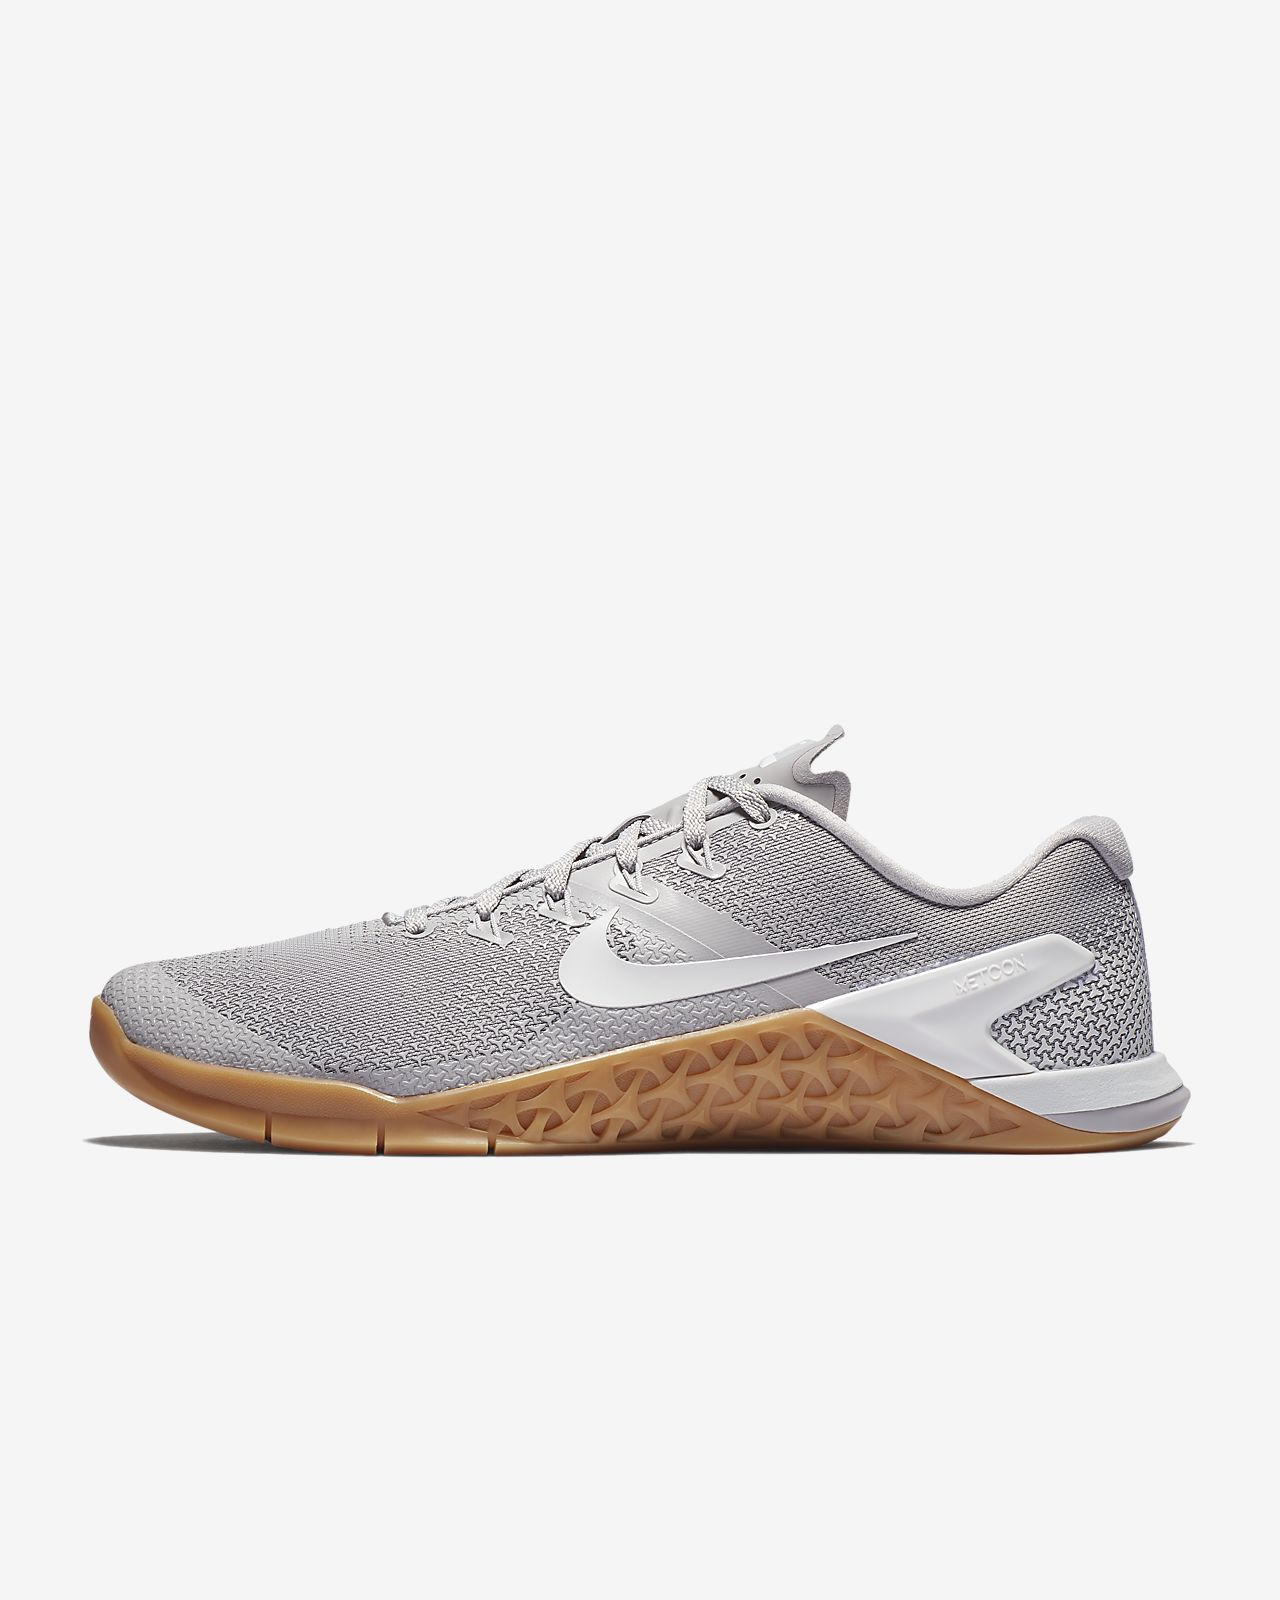 Nike Metcon 4 Men s Cross Training Weightlifting Shoe. Nike.com 11e8203e3